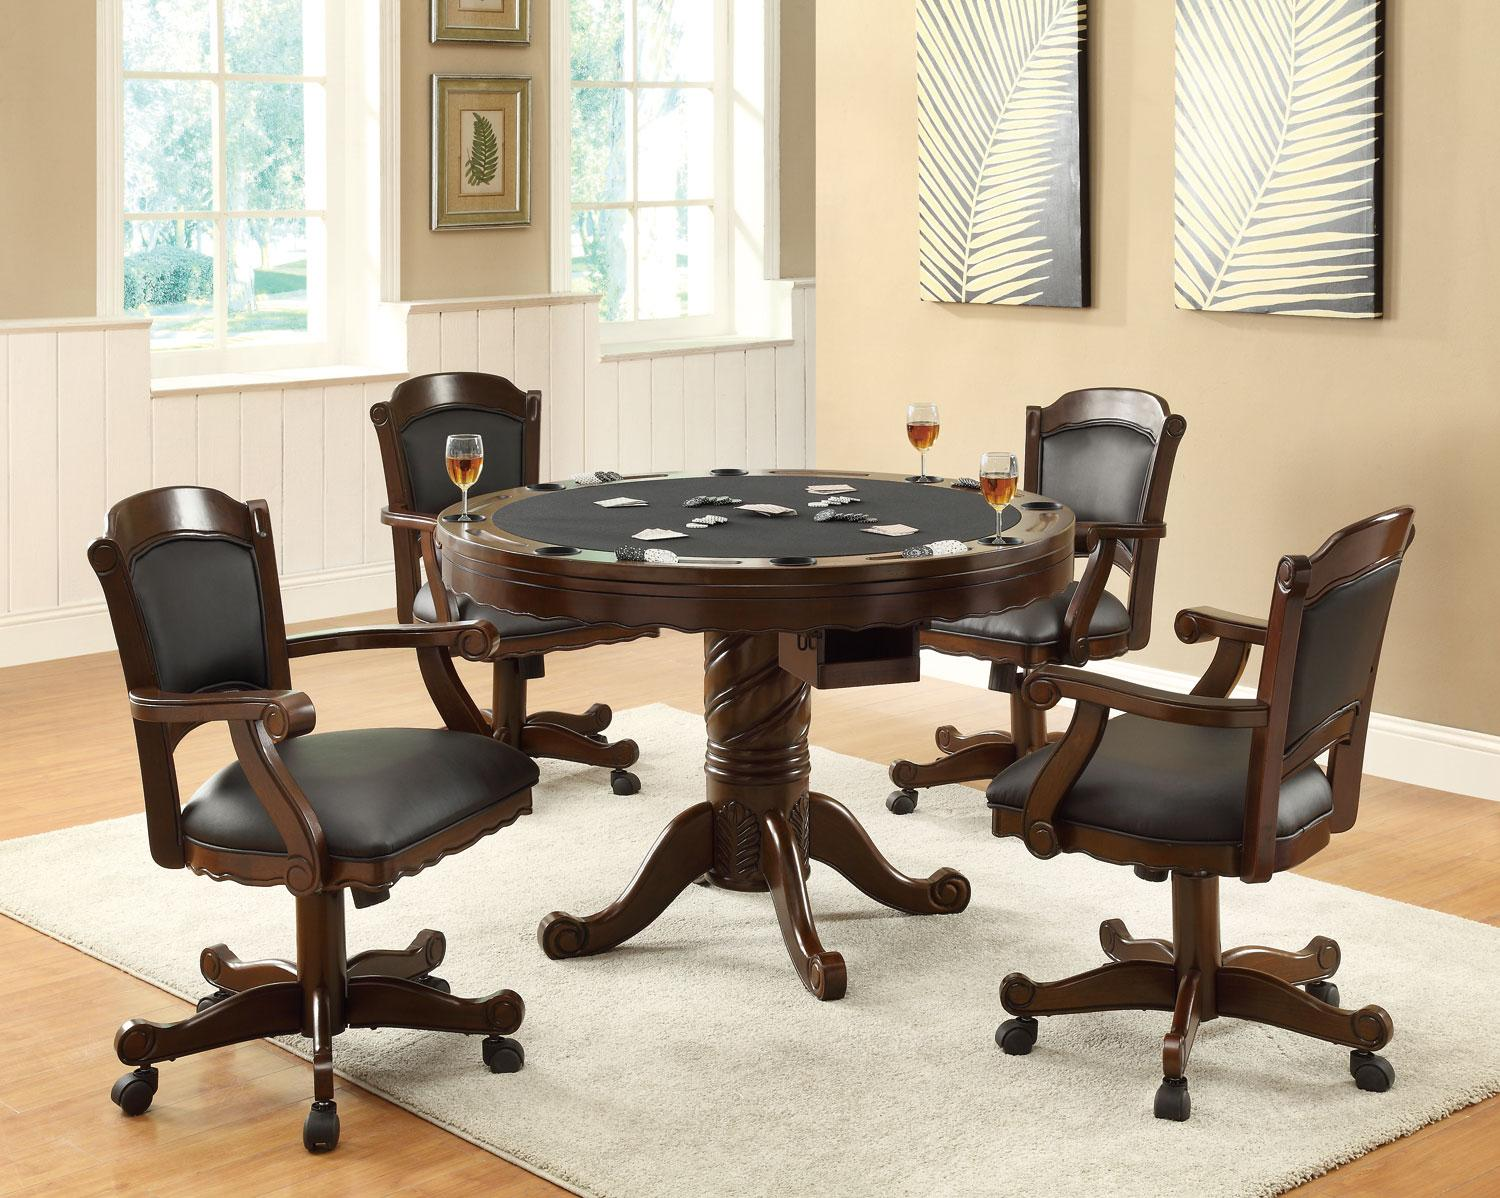 poker table chairs with casters oak tables and furniture outlet bumper pool dining 3 in 1 images products secondary 100871 jpg